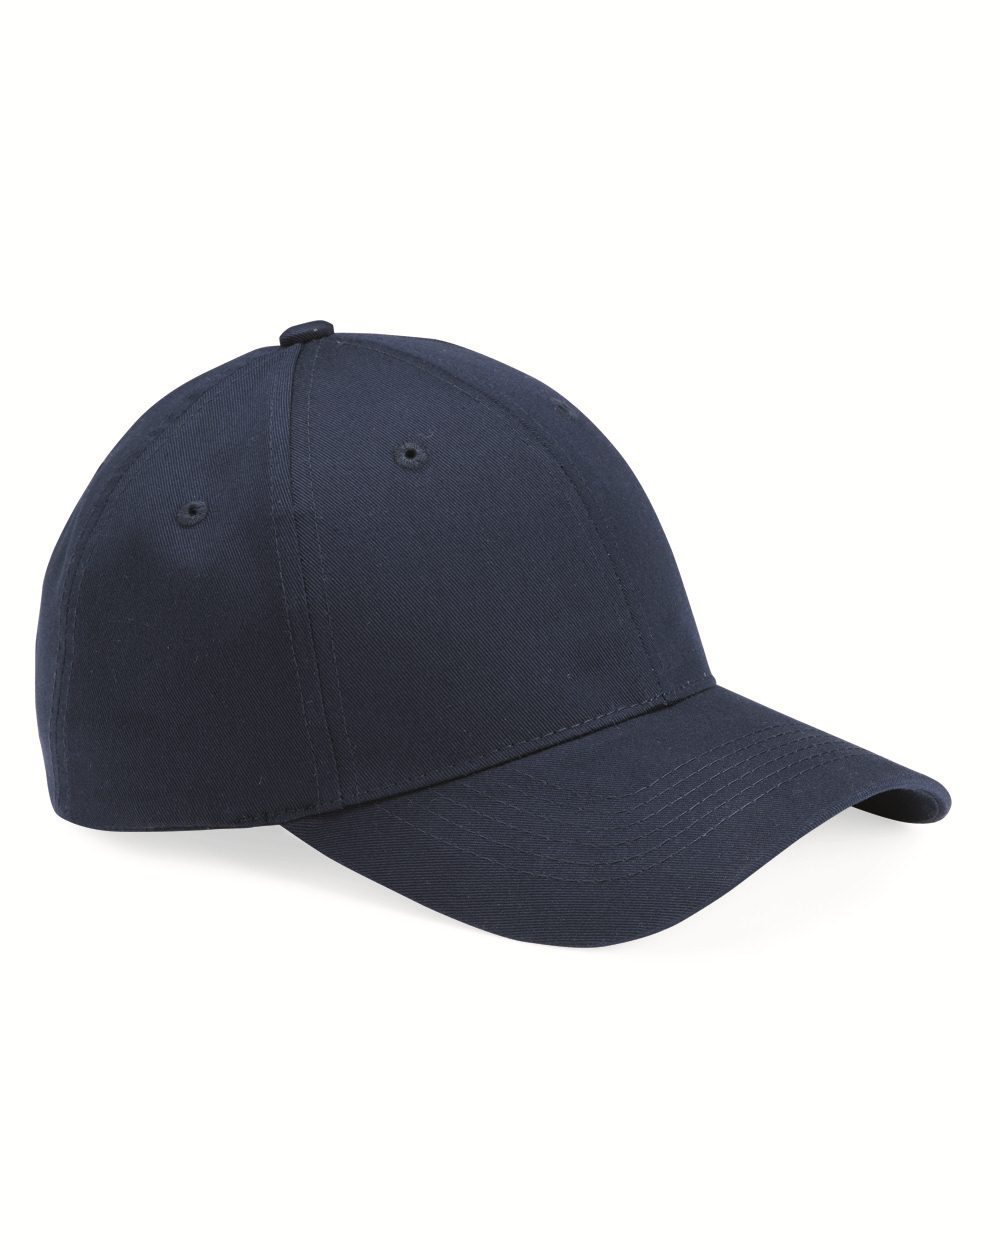 Sportsman Cap 2260 Twill Cap with Velcro Closure